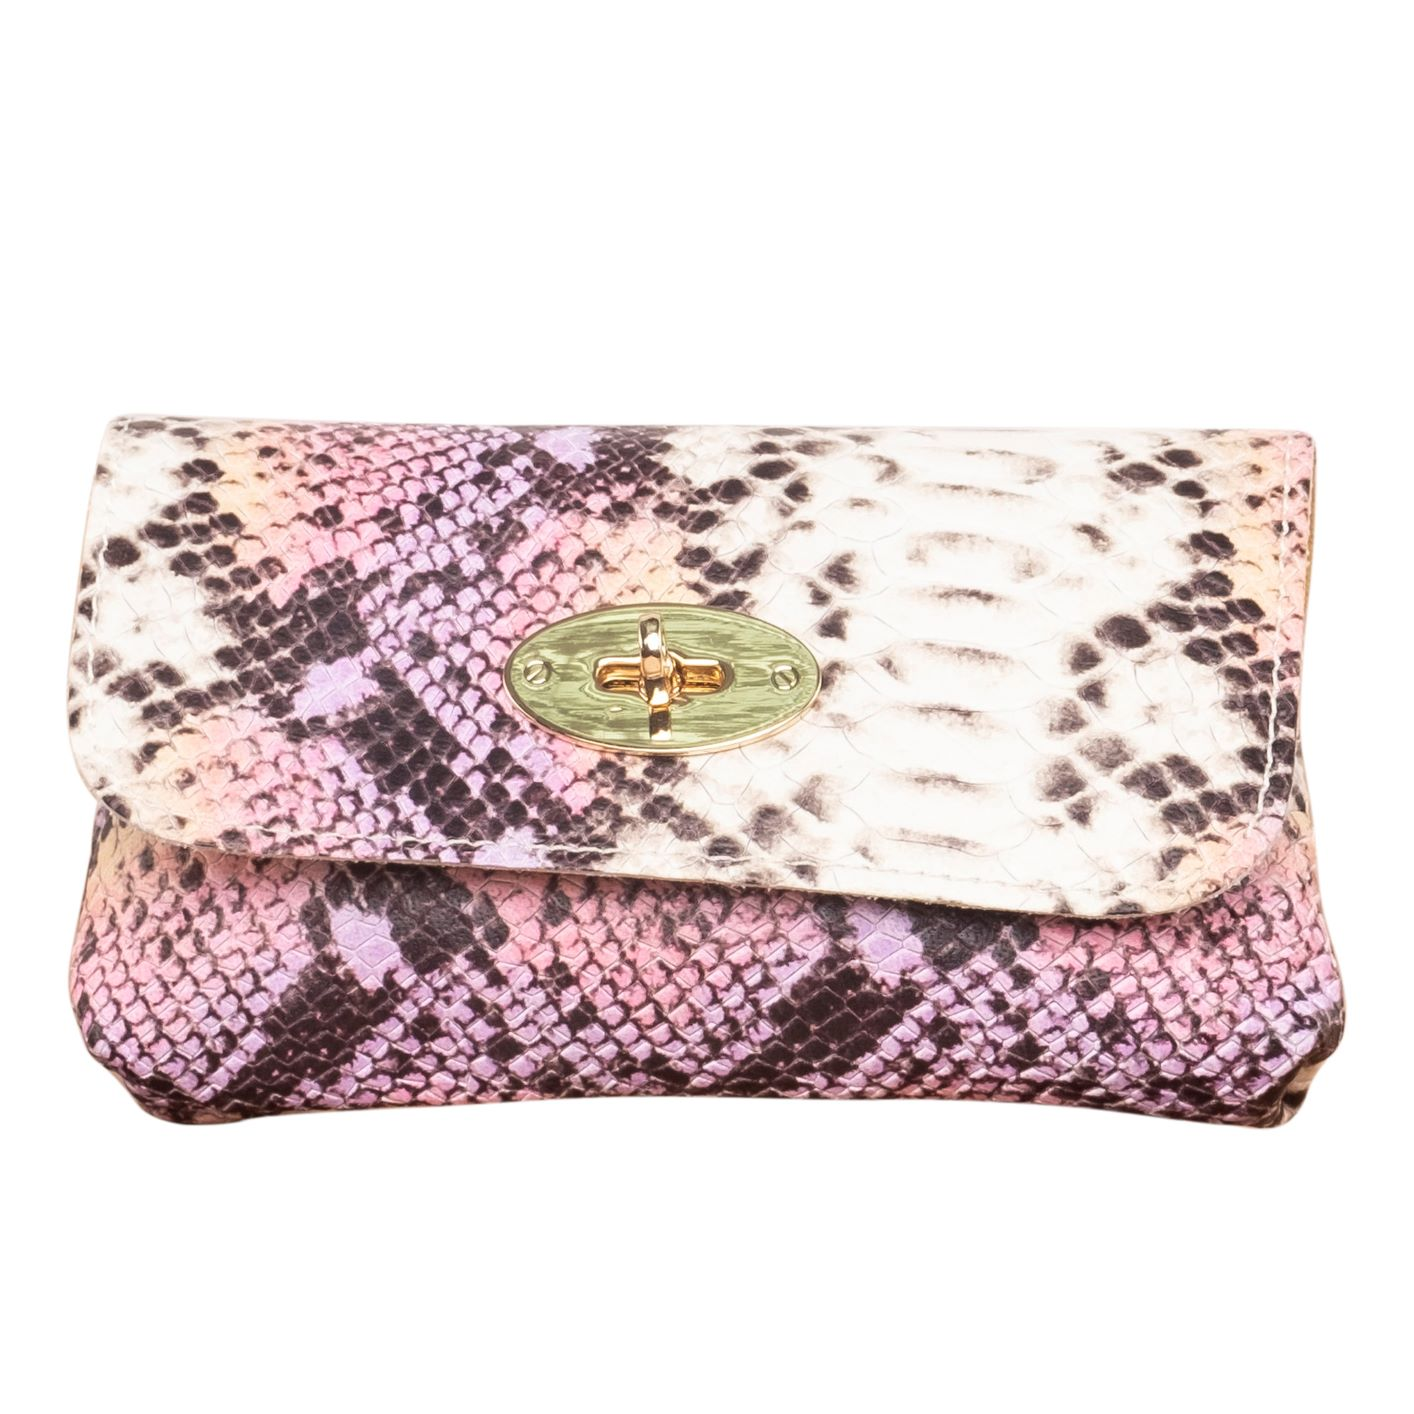 SUAVE SNAKES PRINT LEATHER CLUTCH ( PRINTED )